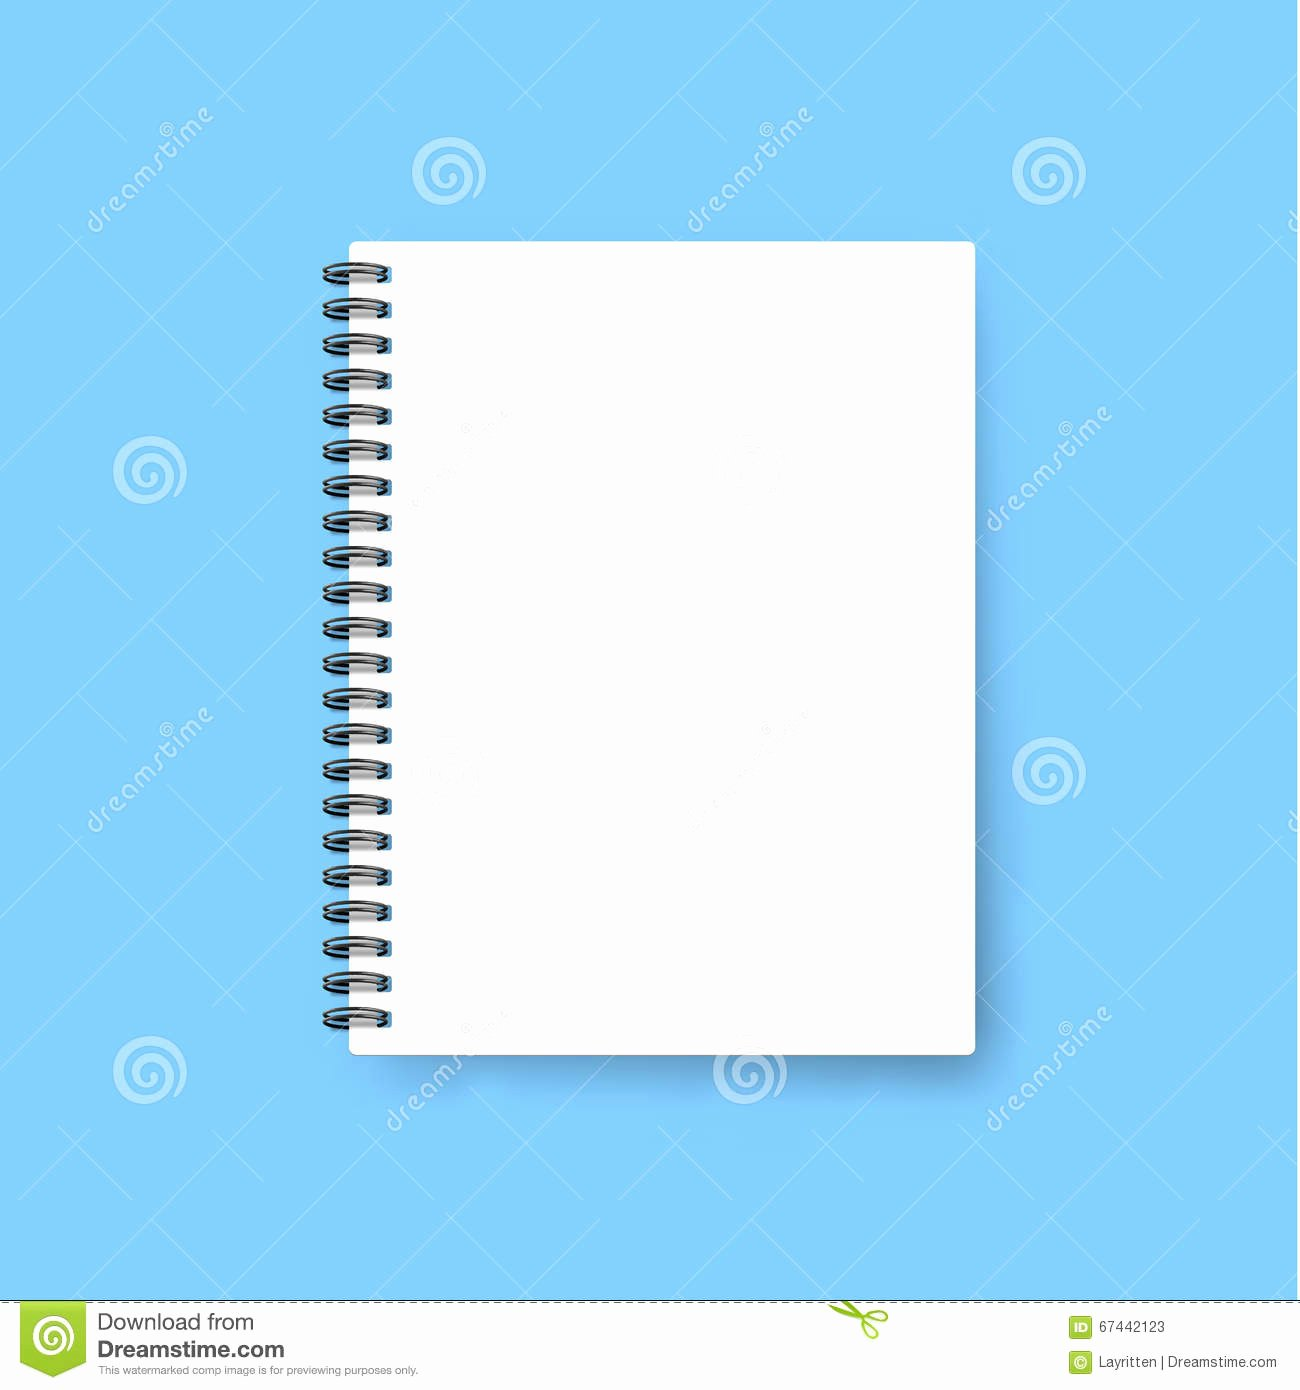 Notebook Cover Design Template Inspirational Realistic Notebook Template Blank Cover Design Mock Up